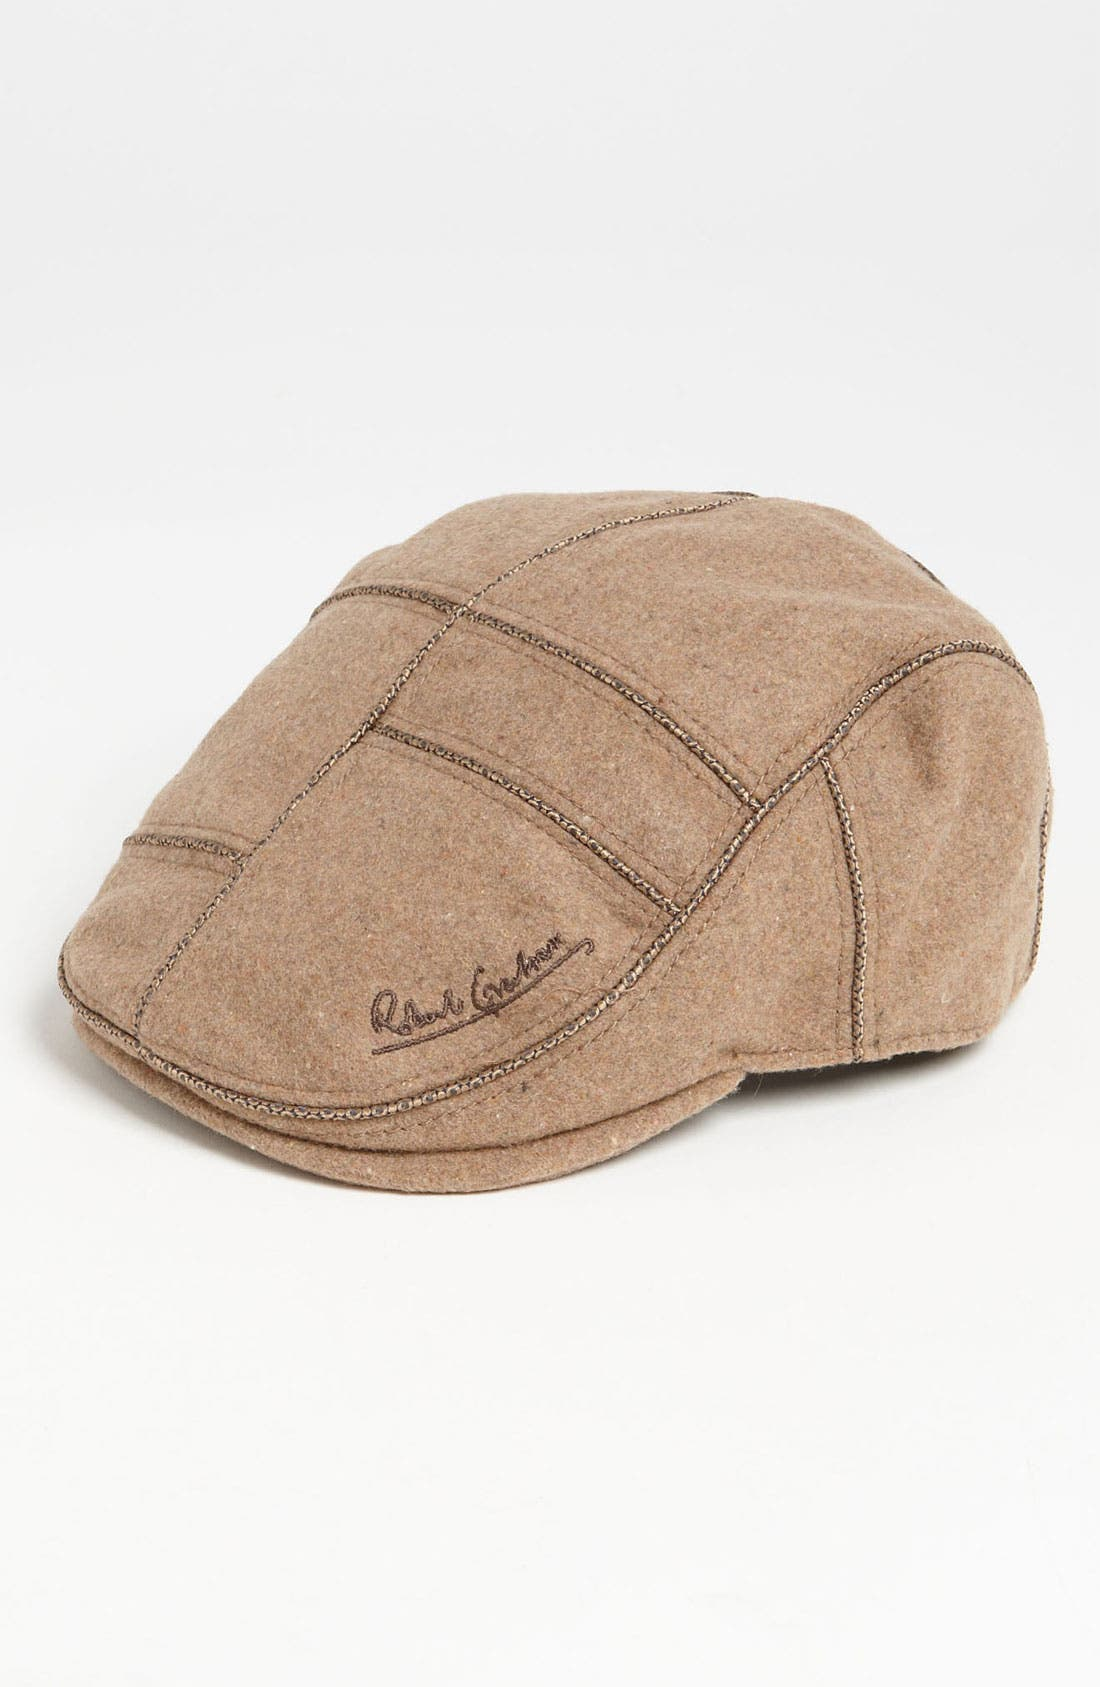 Alternate Image 1 Selected - Robert Graham 'Bandar' Driving Cap